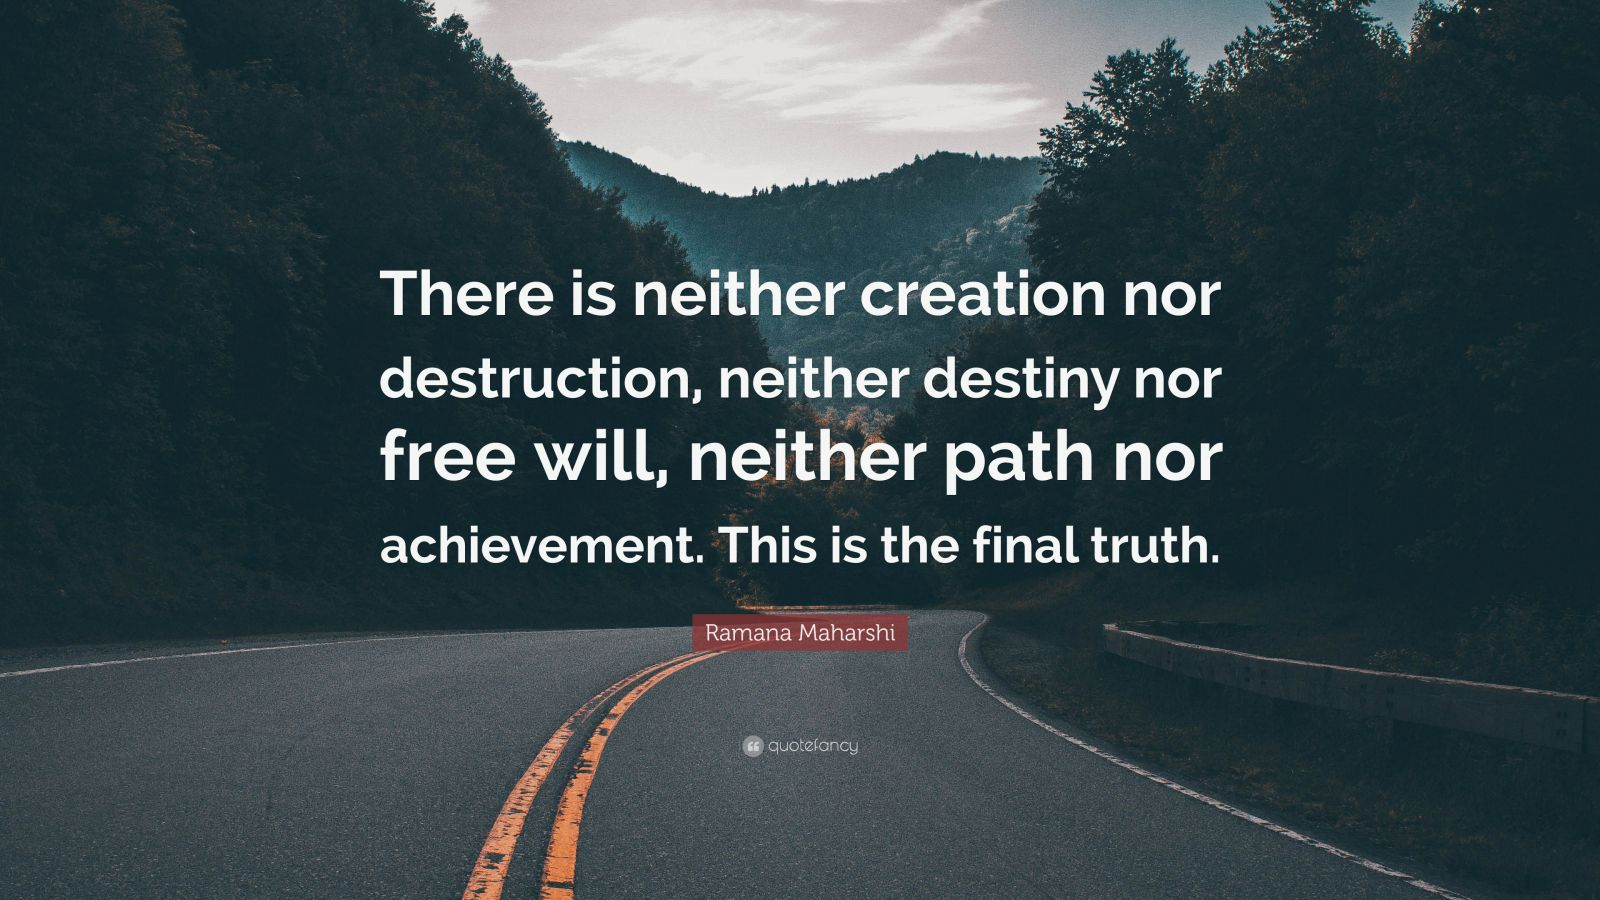 """Ramana Maharshi Quote: """"There is neither creation nor destruction, neither destiny nor free will, neither path nor achievement. This is the final truth."""""""